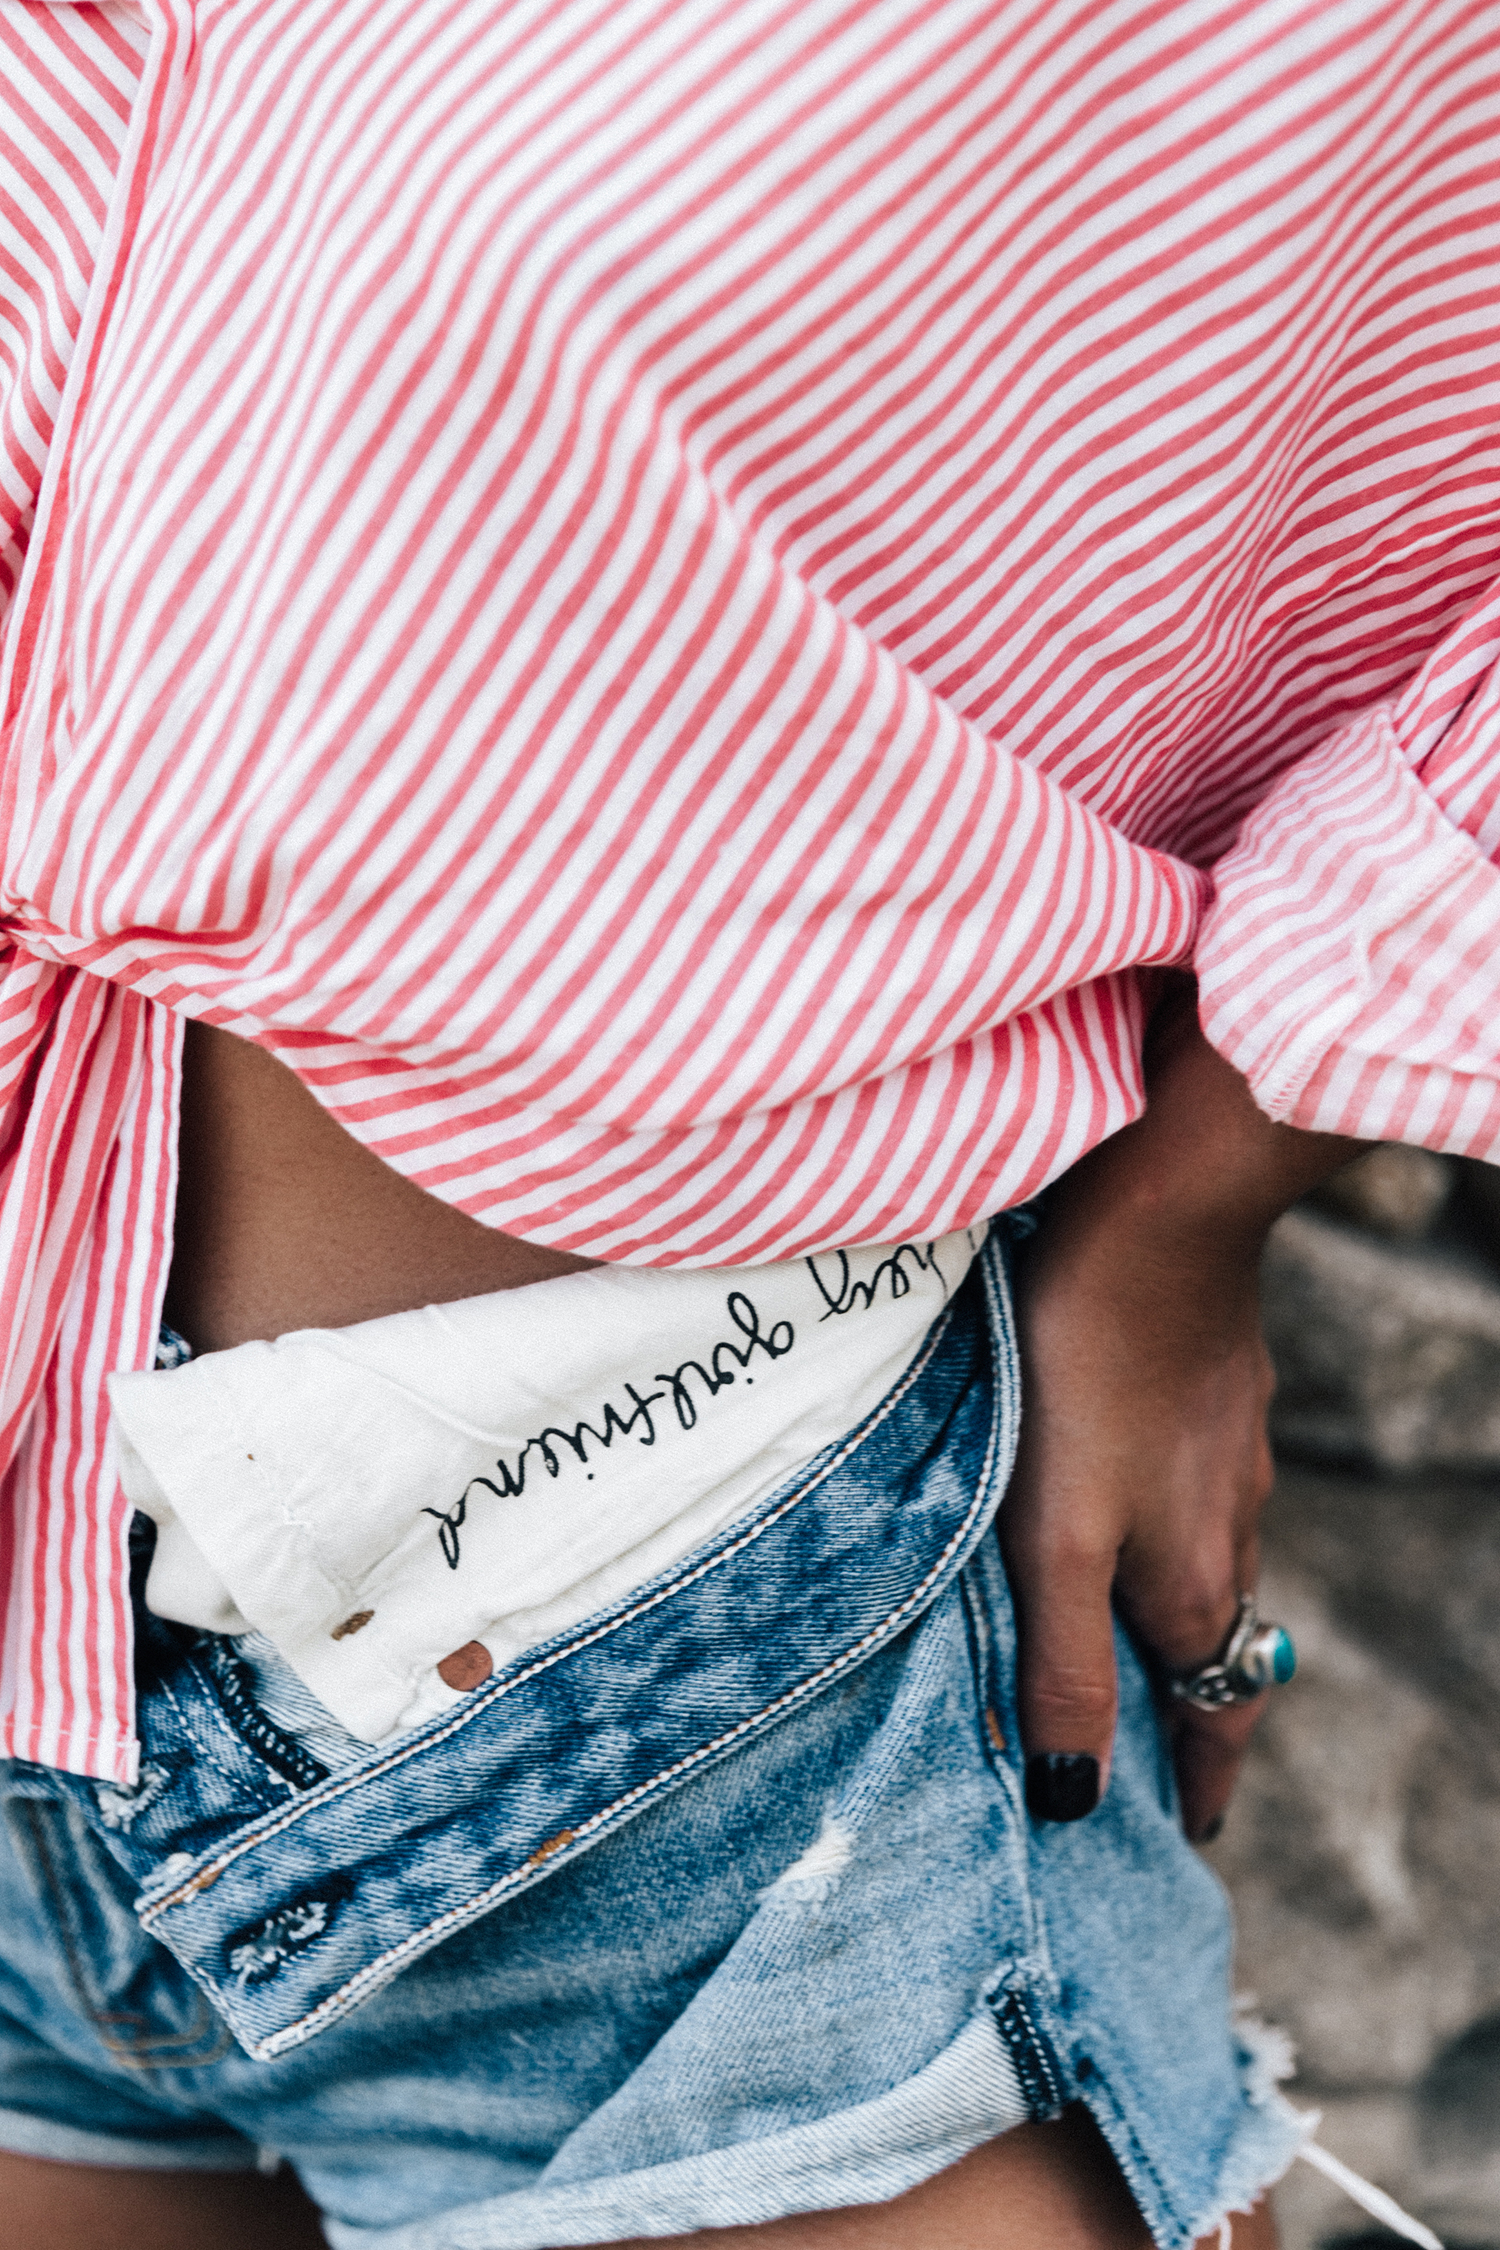 Mykonos-Collage_on_The_Road-Striped_Shirt-GRLFRND_Shorts-Straw_Hat-Denim-Espadrilles-Soludos_Escapes-Greece-Outfit-92